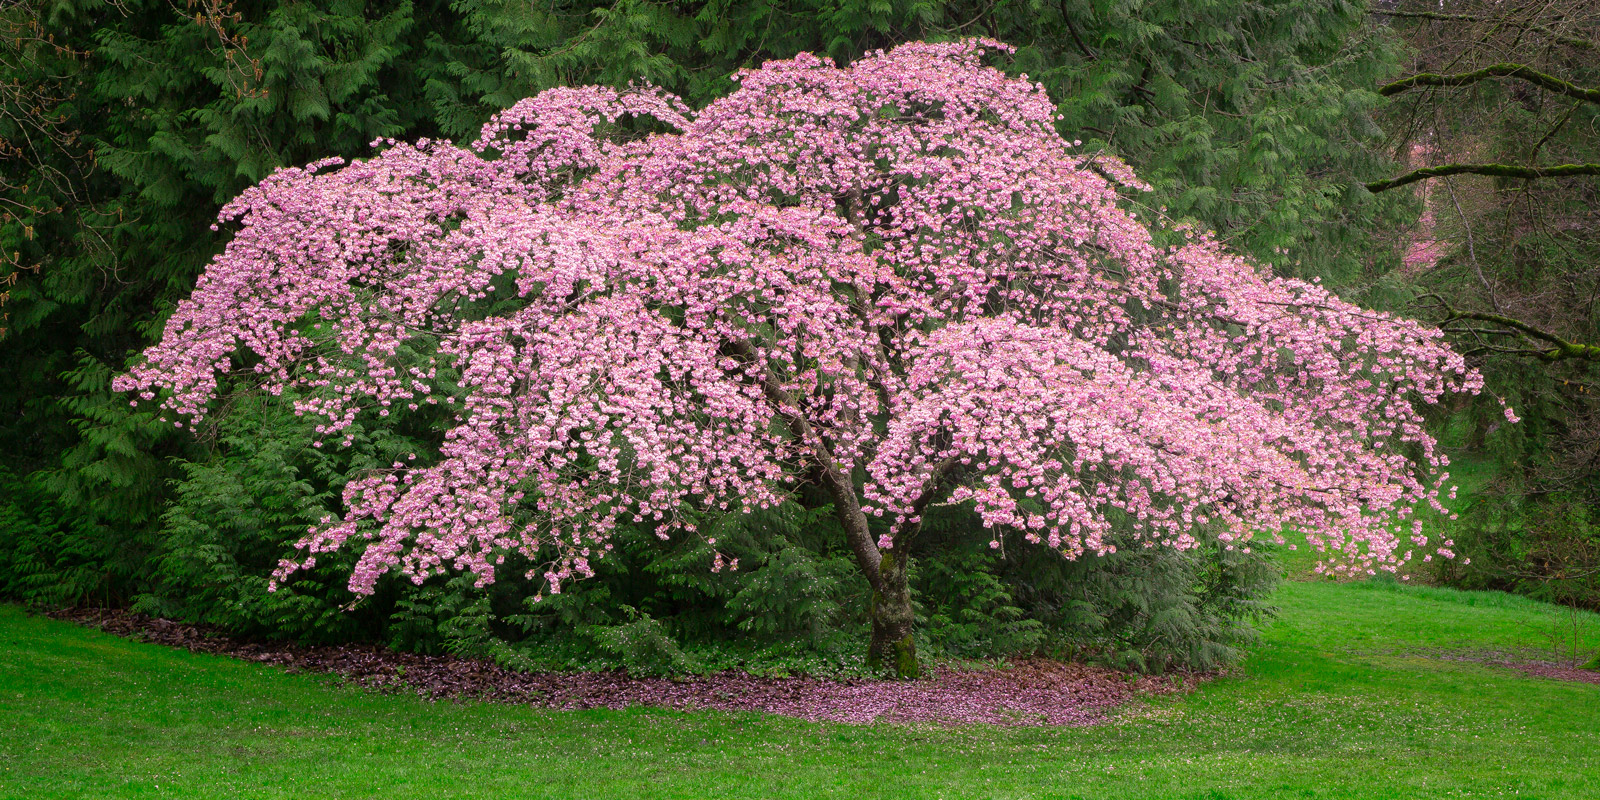 A Limited Edition, Fine Art photograph of a cherry tree with pretty pink blossoms in a peaceful setting in a park in Seattle...